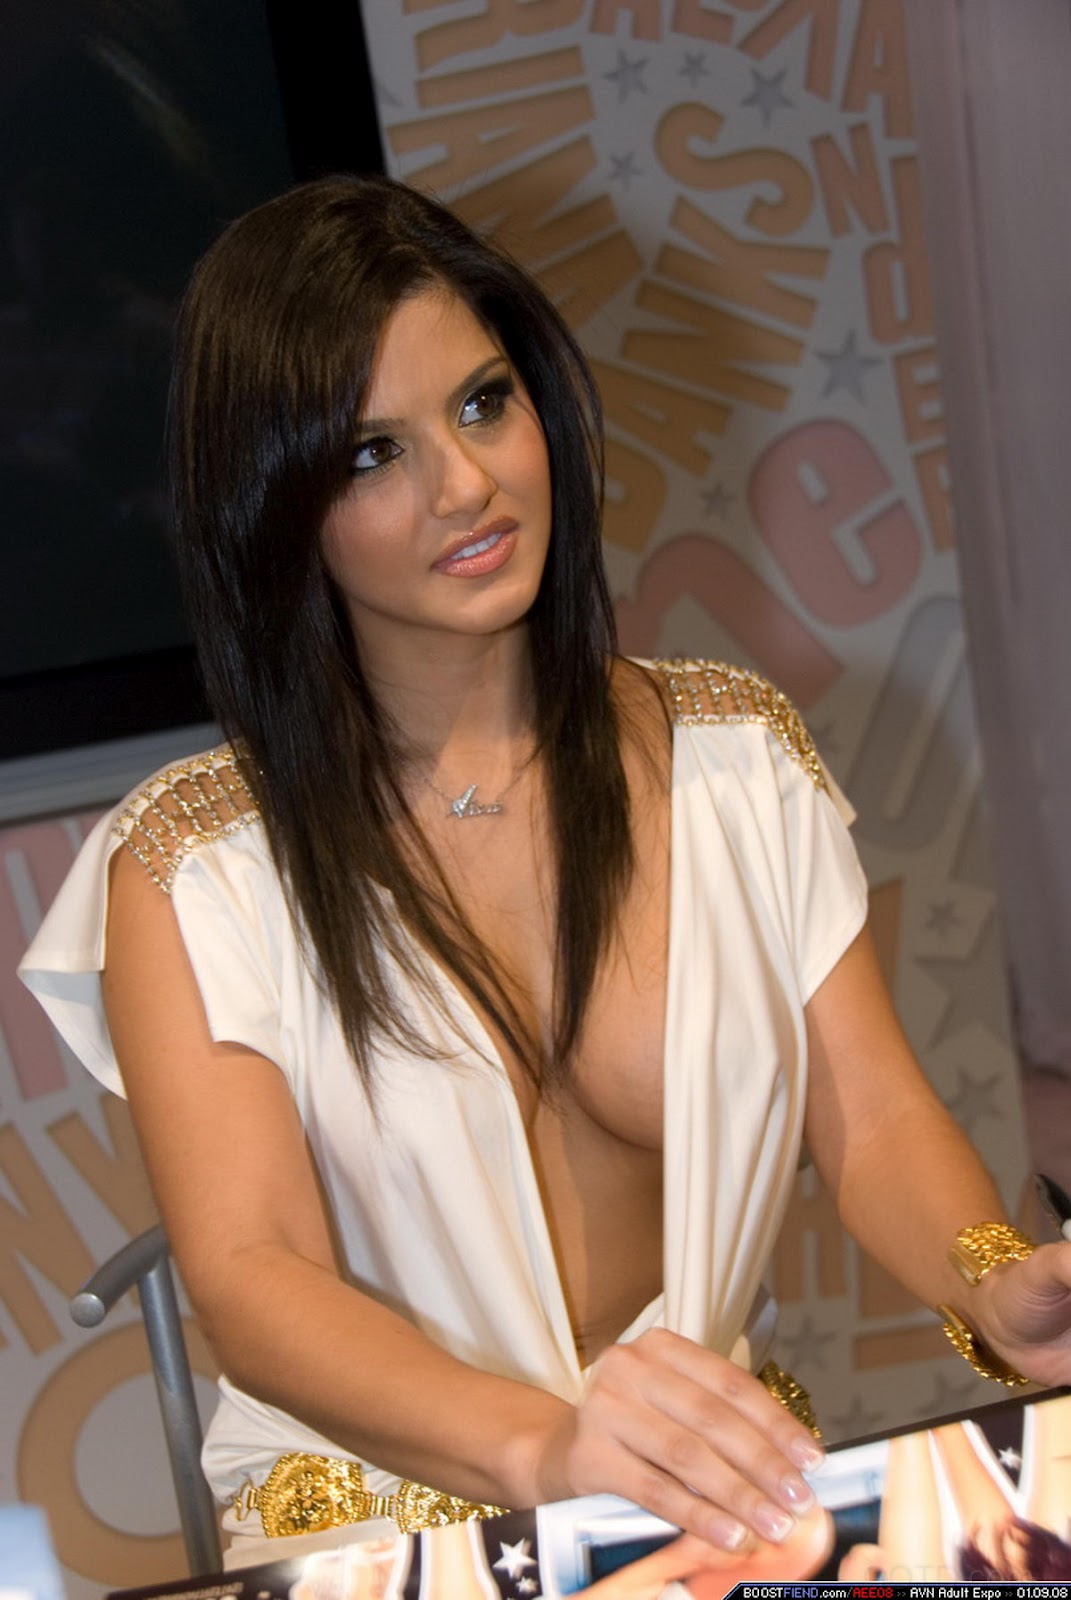 unbuttoned cleavage shirt girl Hot